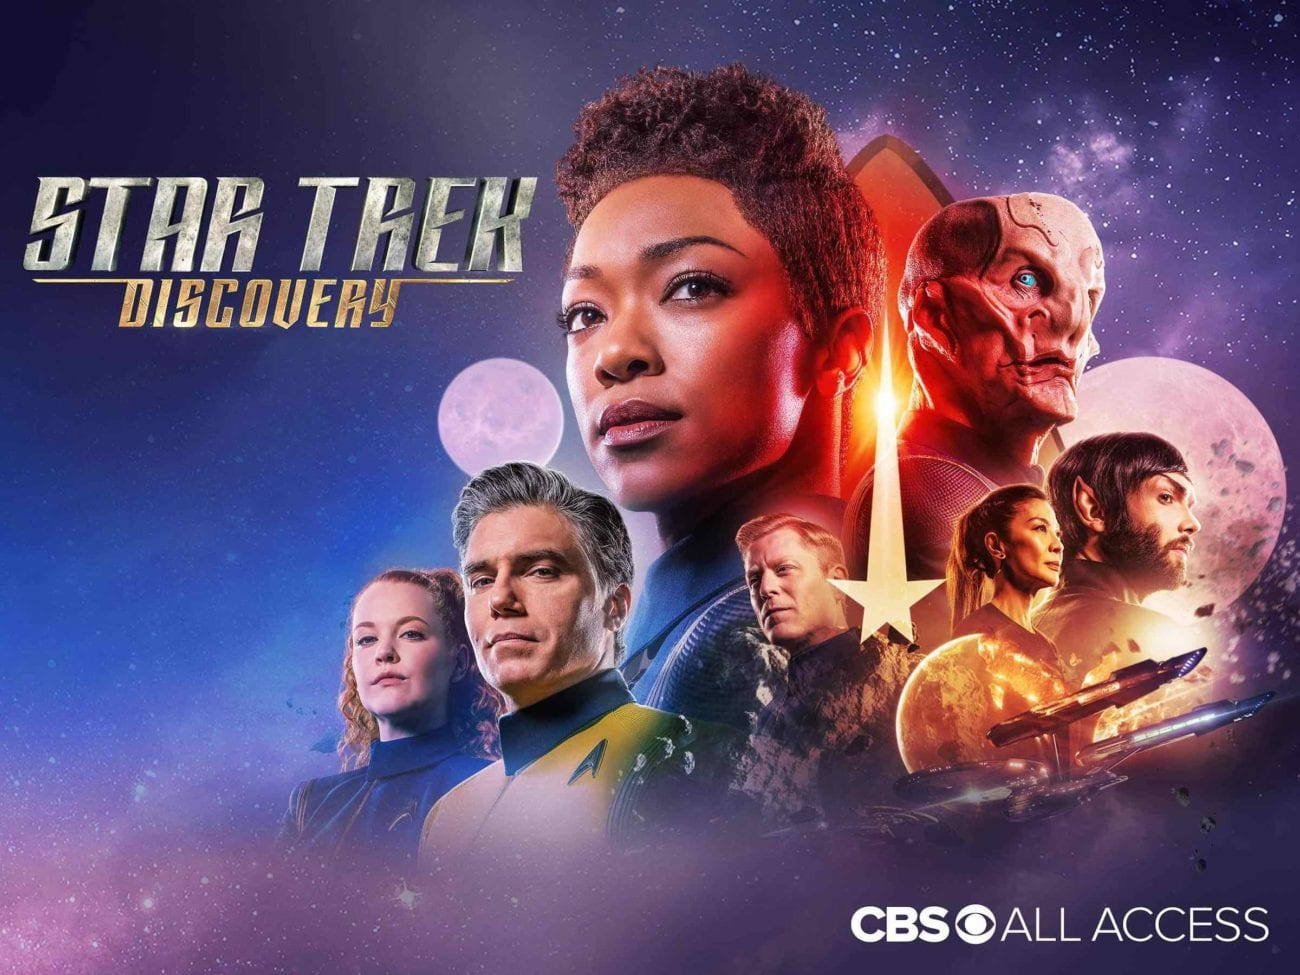 'Star Trek: Discovery' can boldly go . . . to the front of this list for Best Streaming Series in Film Daily's Bingewatch Awards.